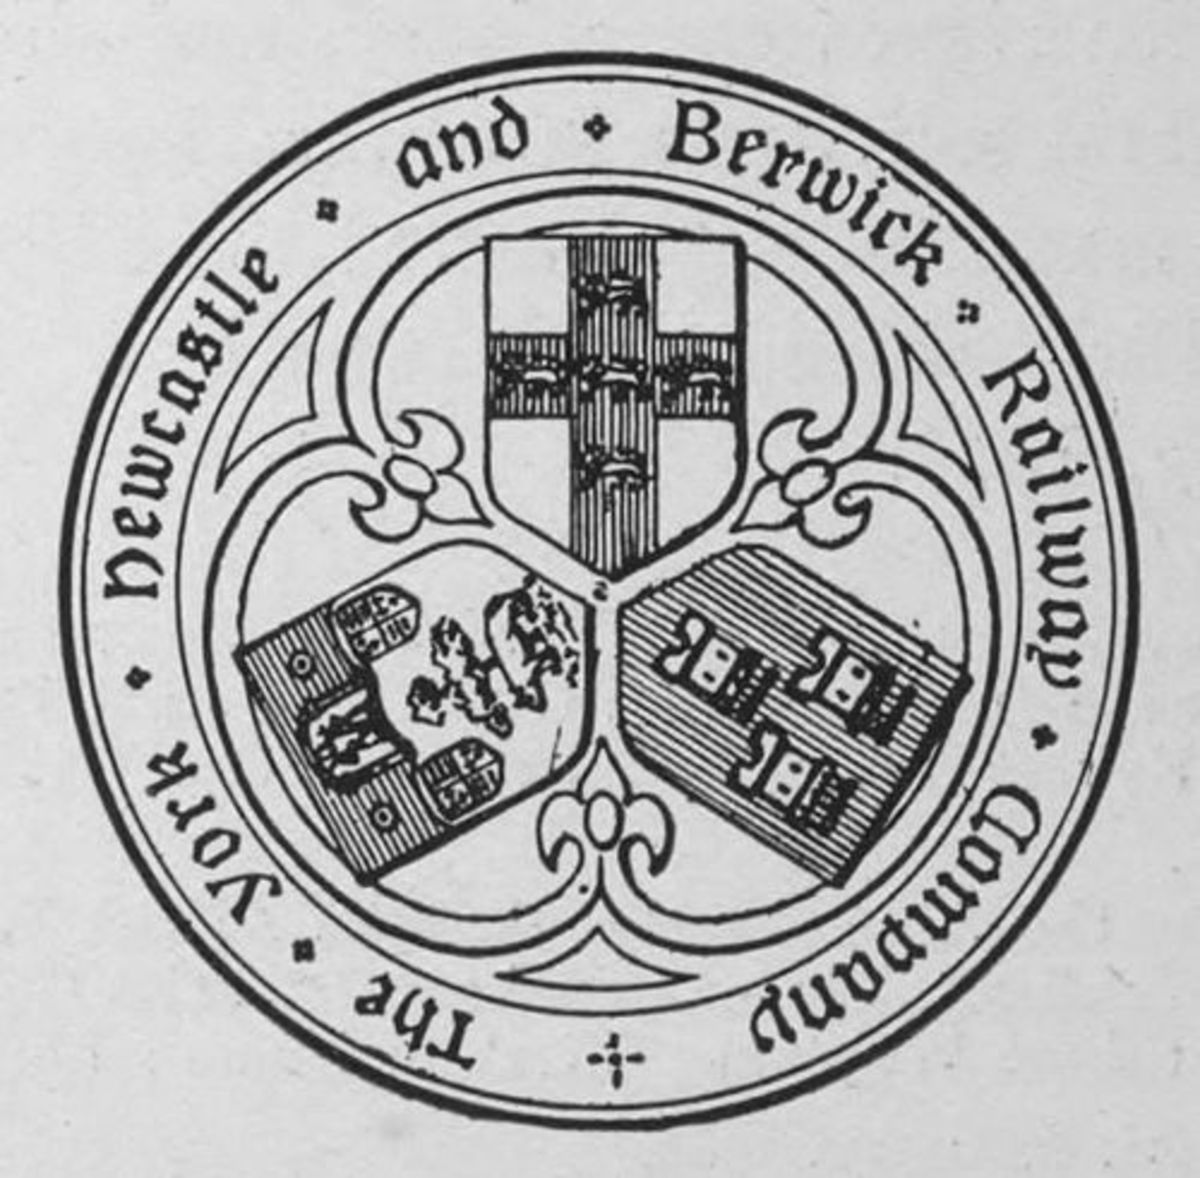 The York, Newcastle & Berwick Railway seal displays the arms of each city, with York's at the top, Newcastle's on the right